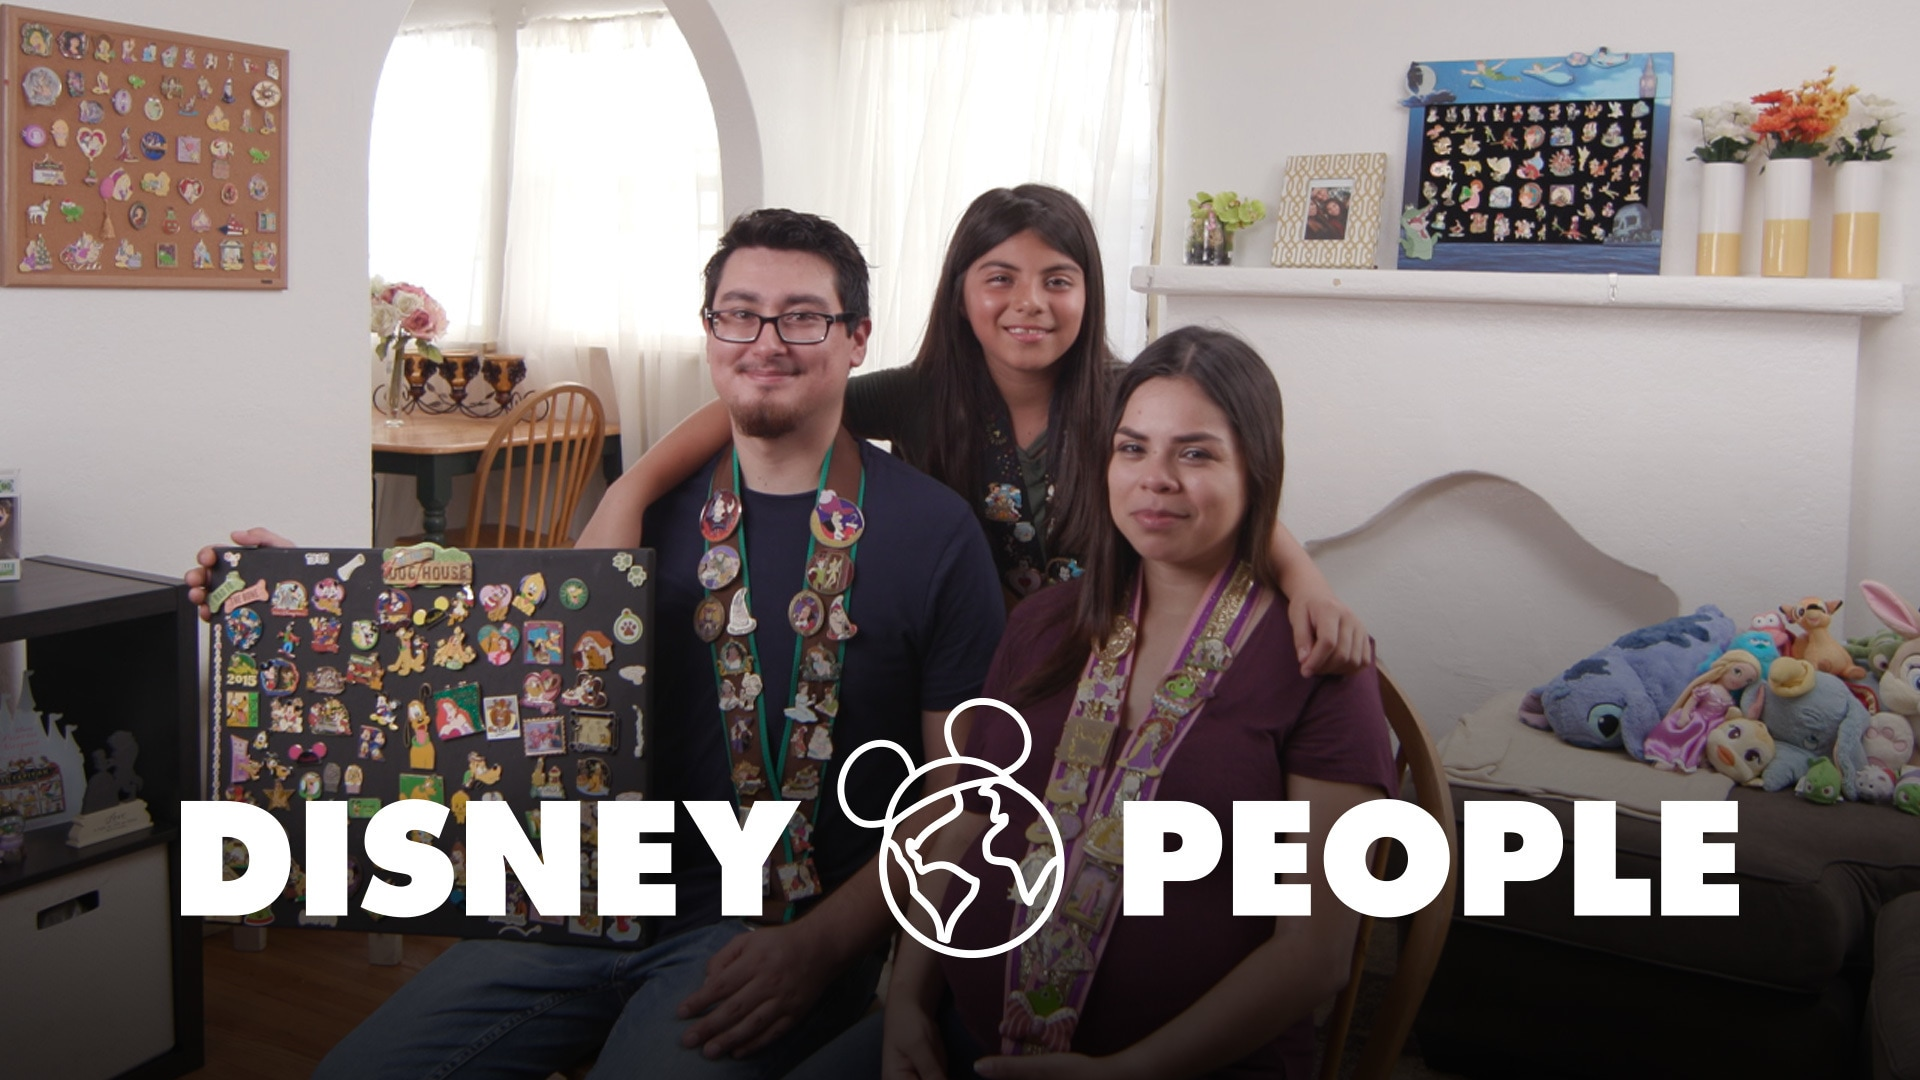 The Disney Pin Collecting Family | Disney People by Oh My Disney